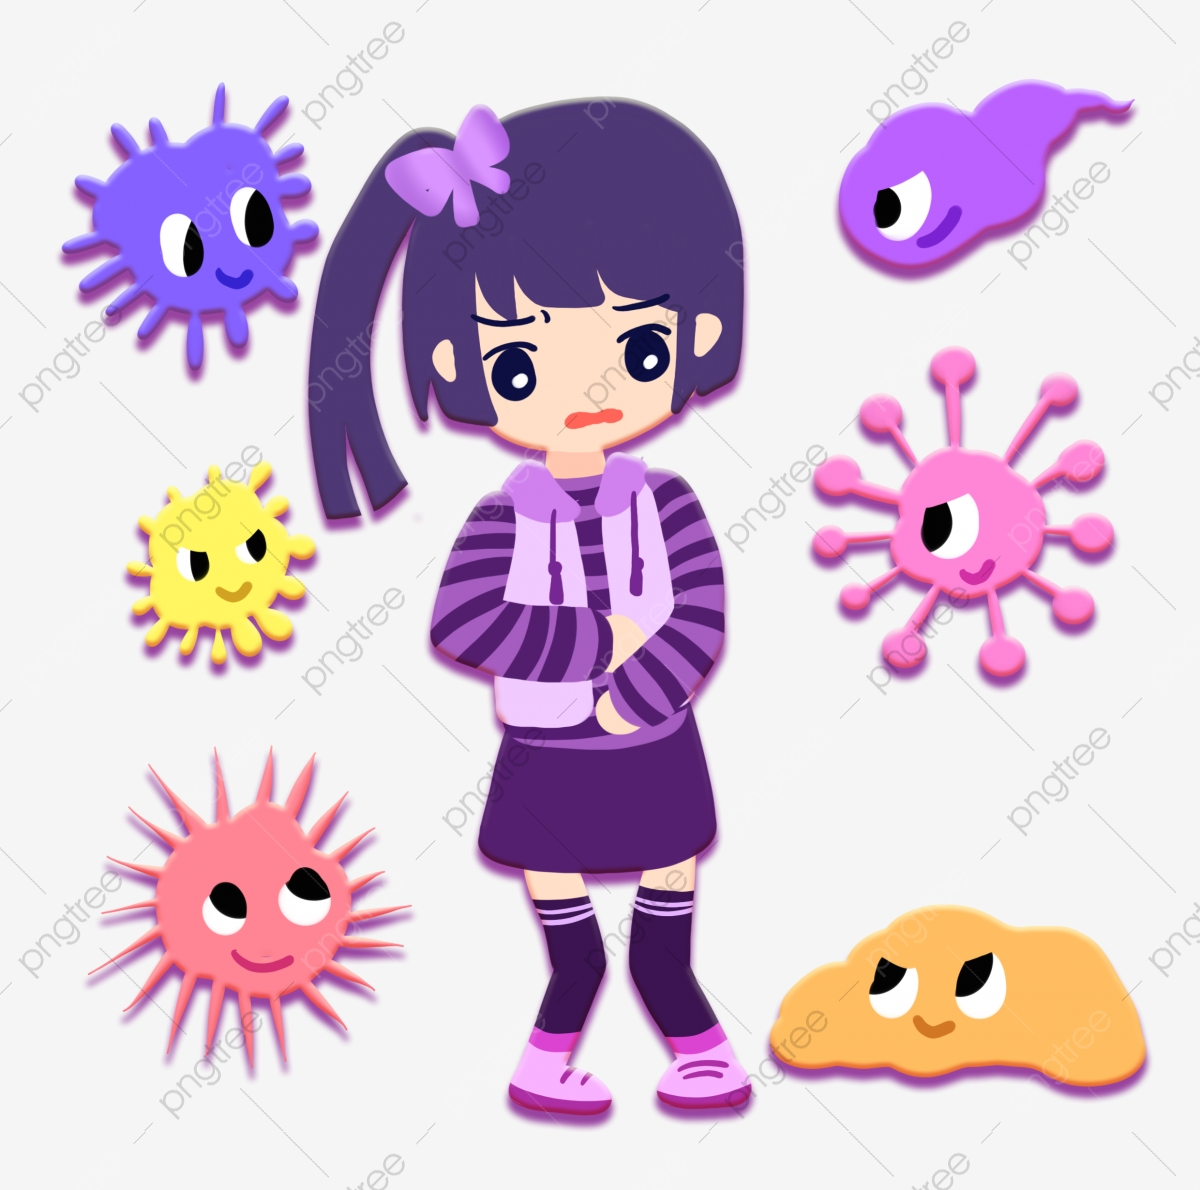 bacterial invasion girl stomachache bacteria cartoon stomach pain png transparent clipart image and psd file for free download https pngtree com freepng bacterial invasion girl stomachache 4623427 html